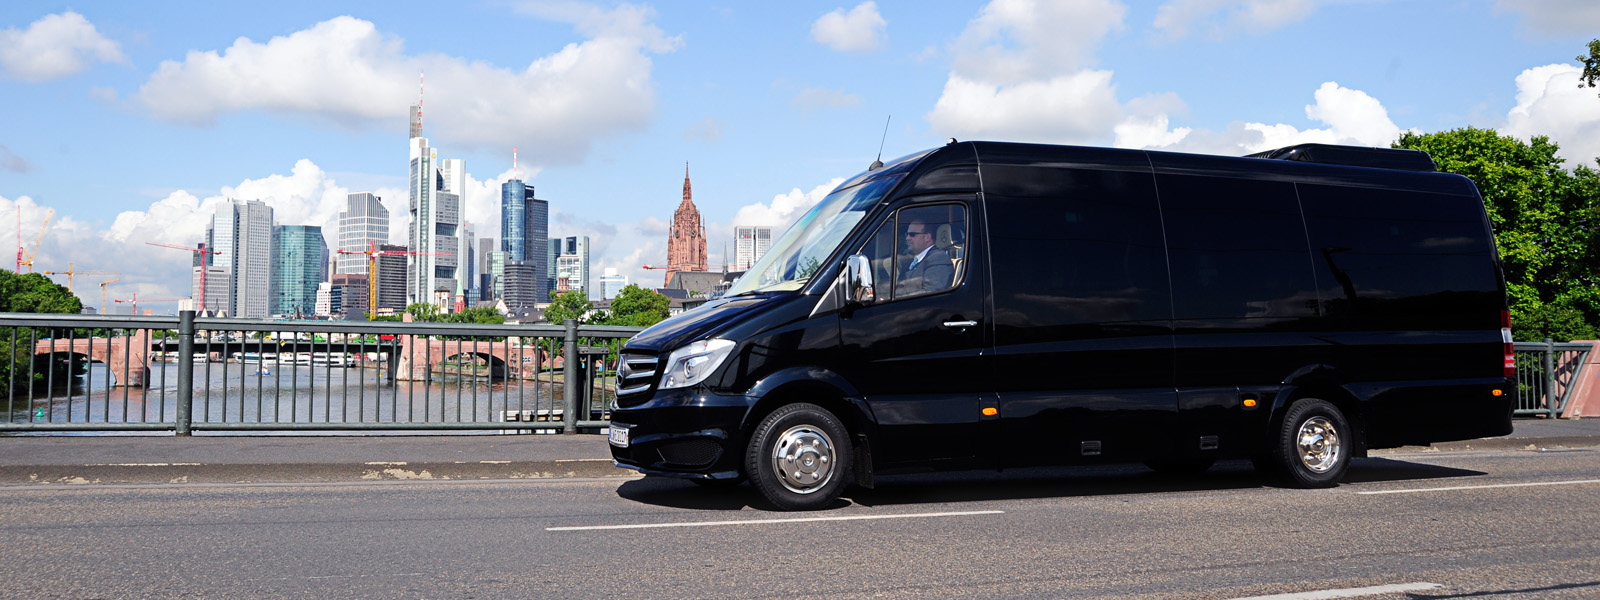 sprinter mieten frankfurt mercedes vip sprinter 8 fahrg ste mieten frankfurt mercedes vip. Black Bedroom Furniture Sets. Home Design Ideas